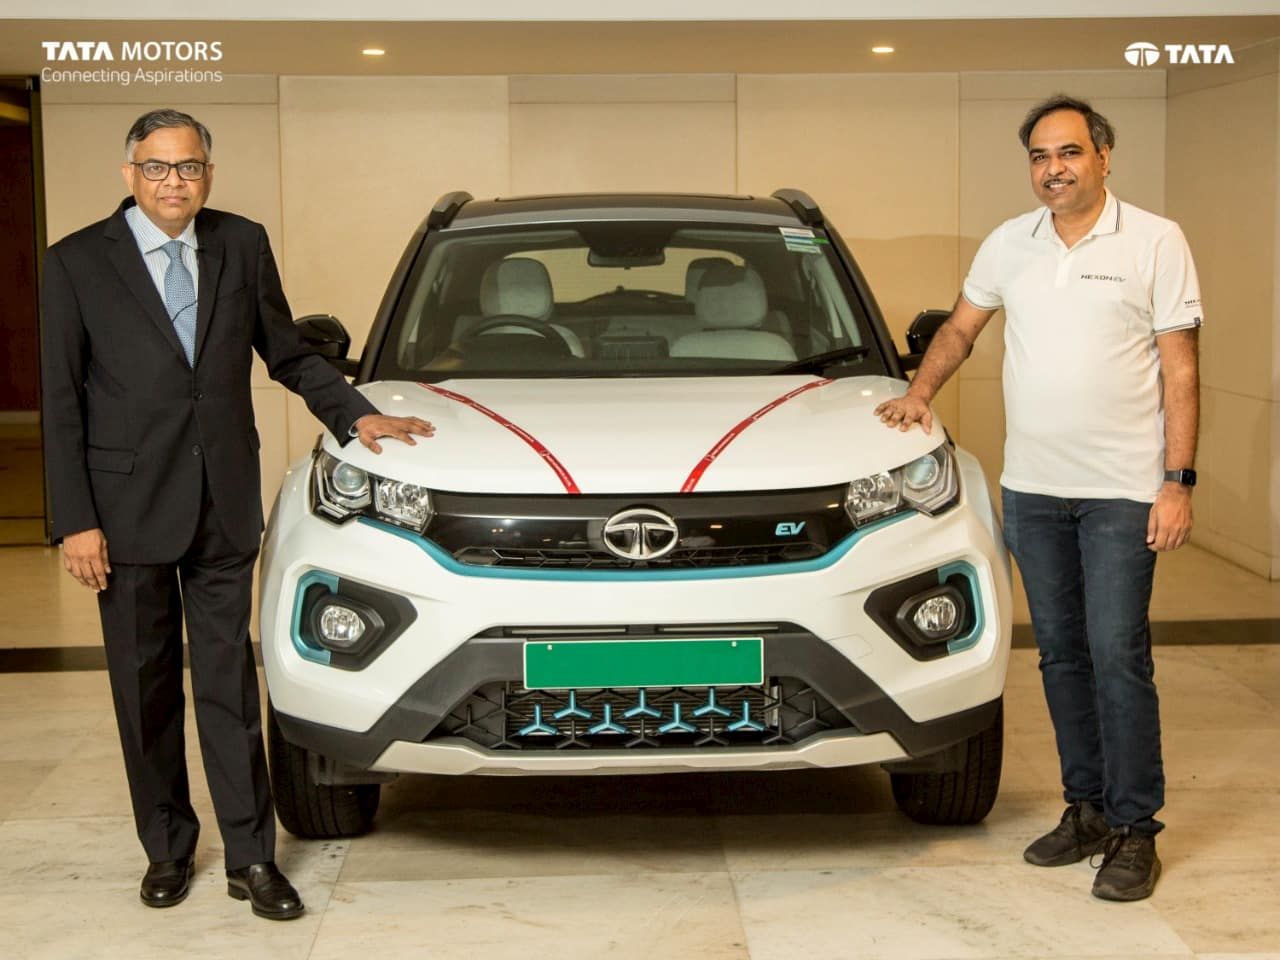 N Chandrasekharan & Shailesh Chandra Tata Nexon EV